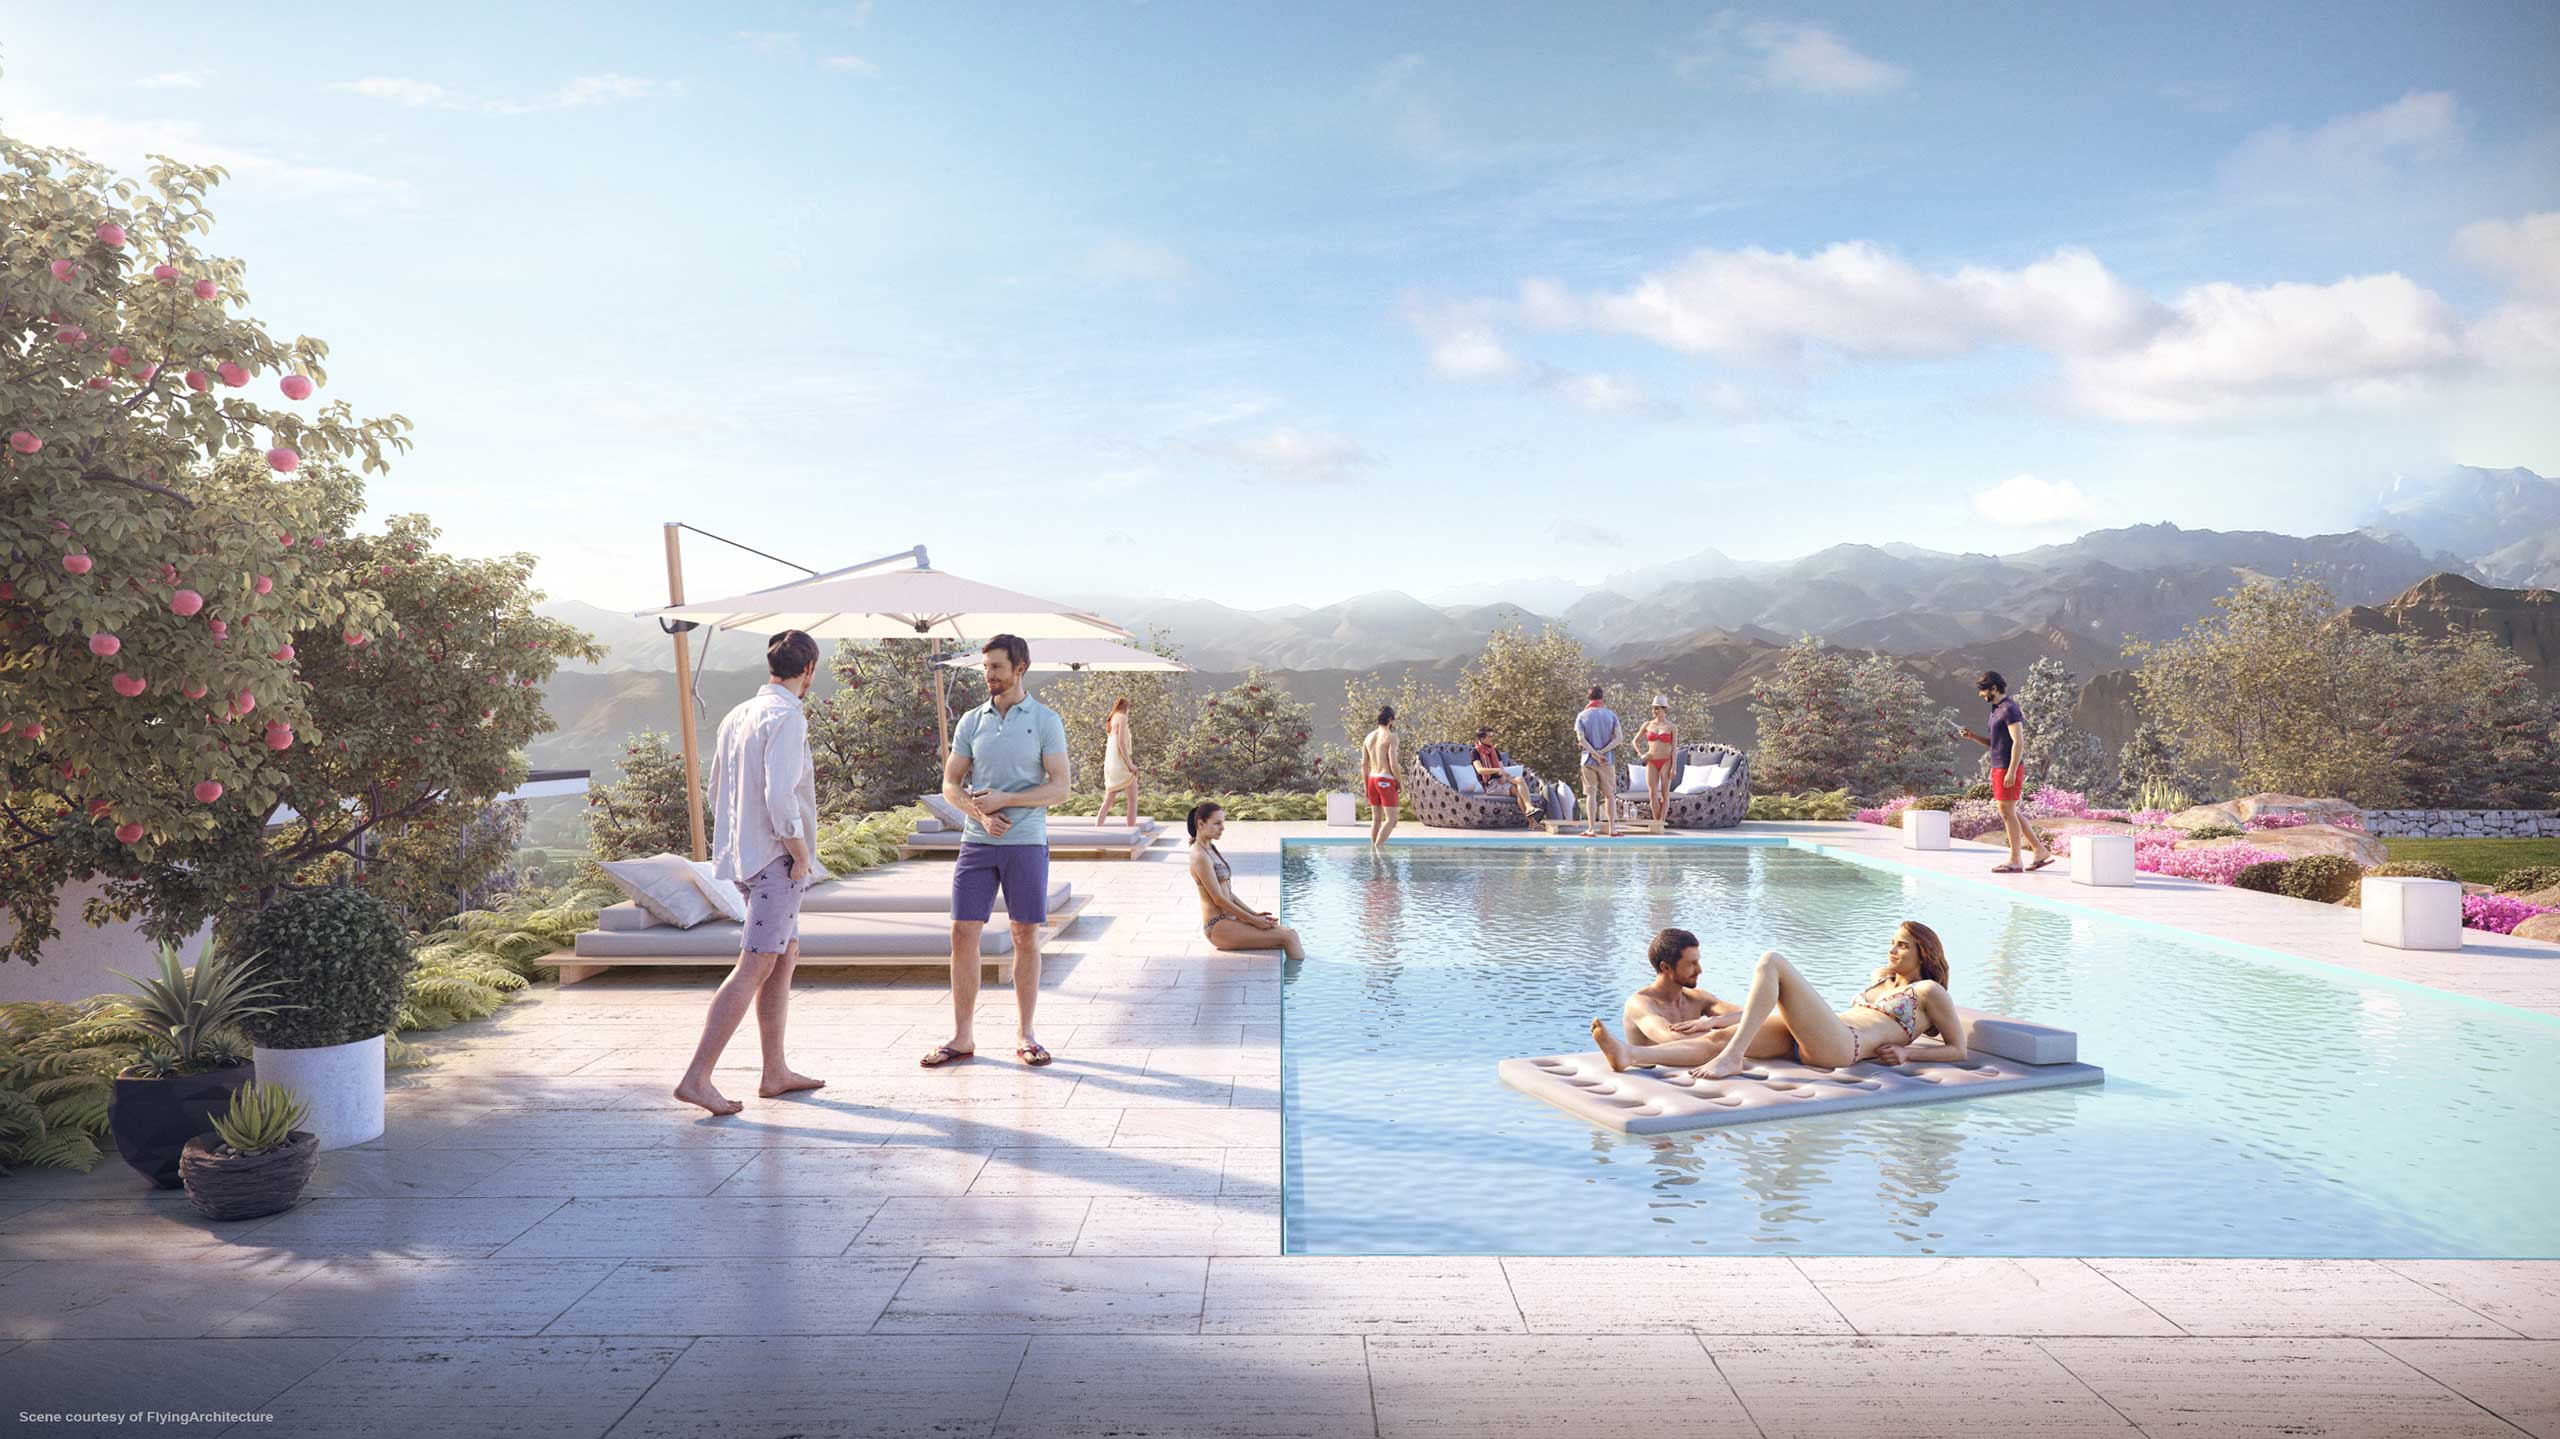 State of the art 3d people models animation software for for 3d pool design software free download